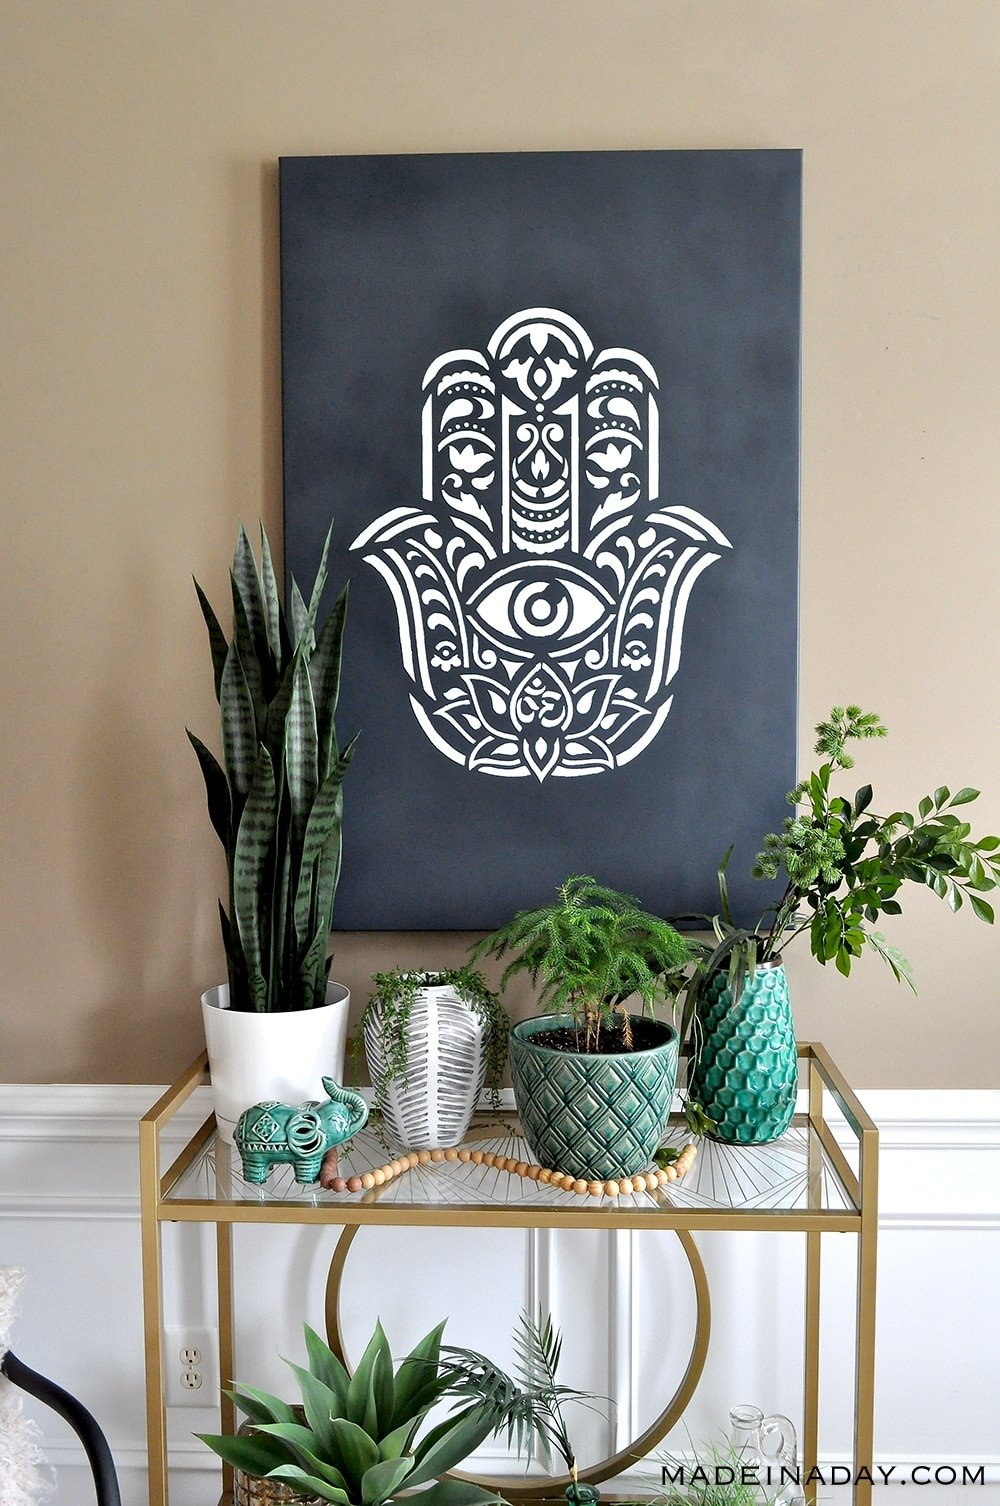 How to make Hamsa Palm Mandala Wall Art using a Stencil